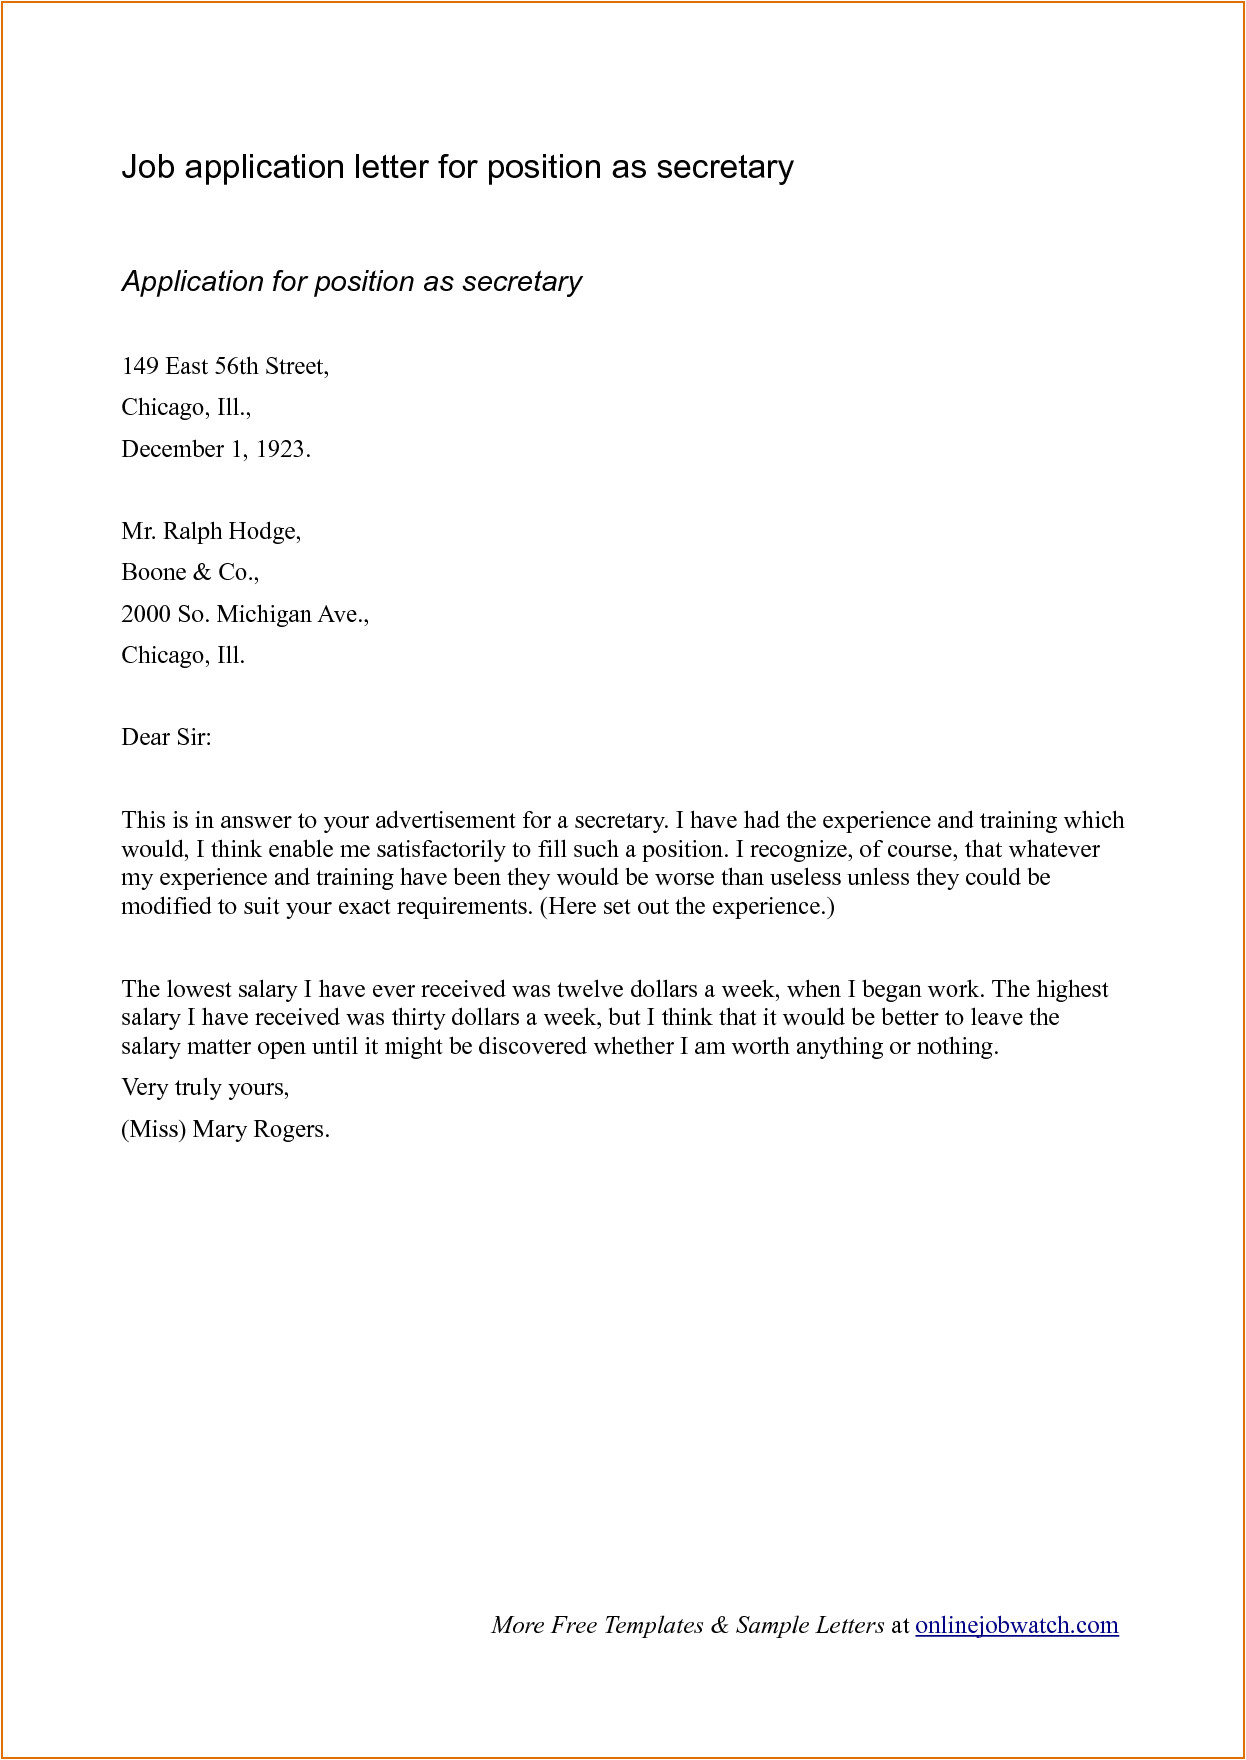 How to Type A Cover Letter for A Job Application Sample Cover Letter format for Job Application